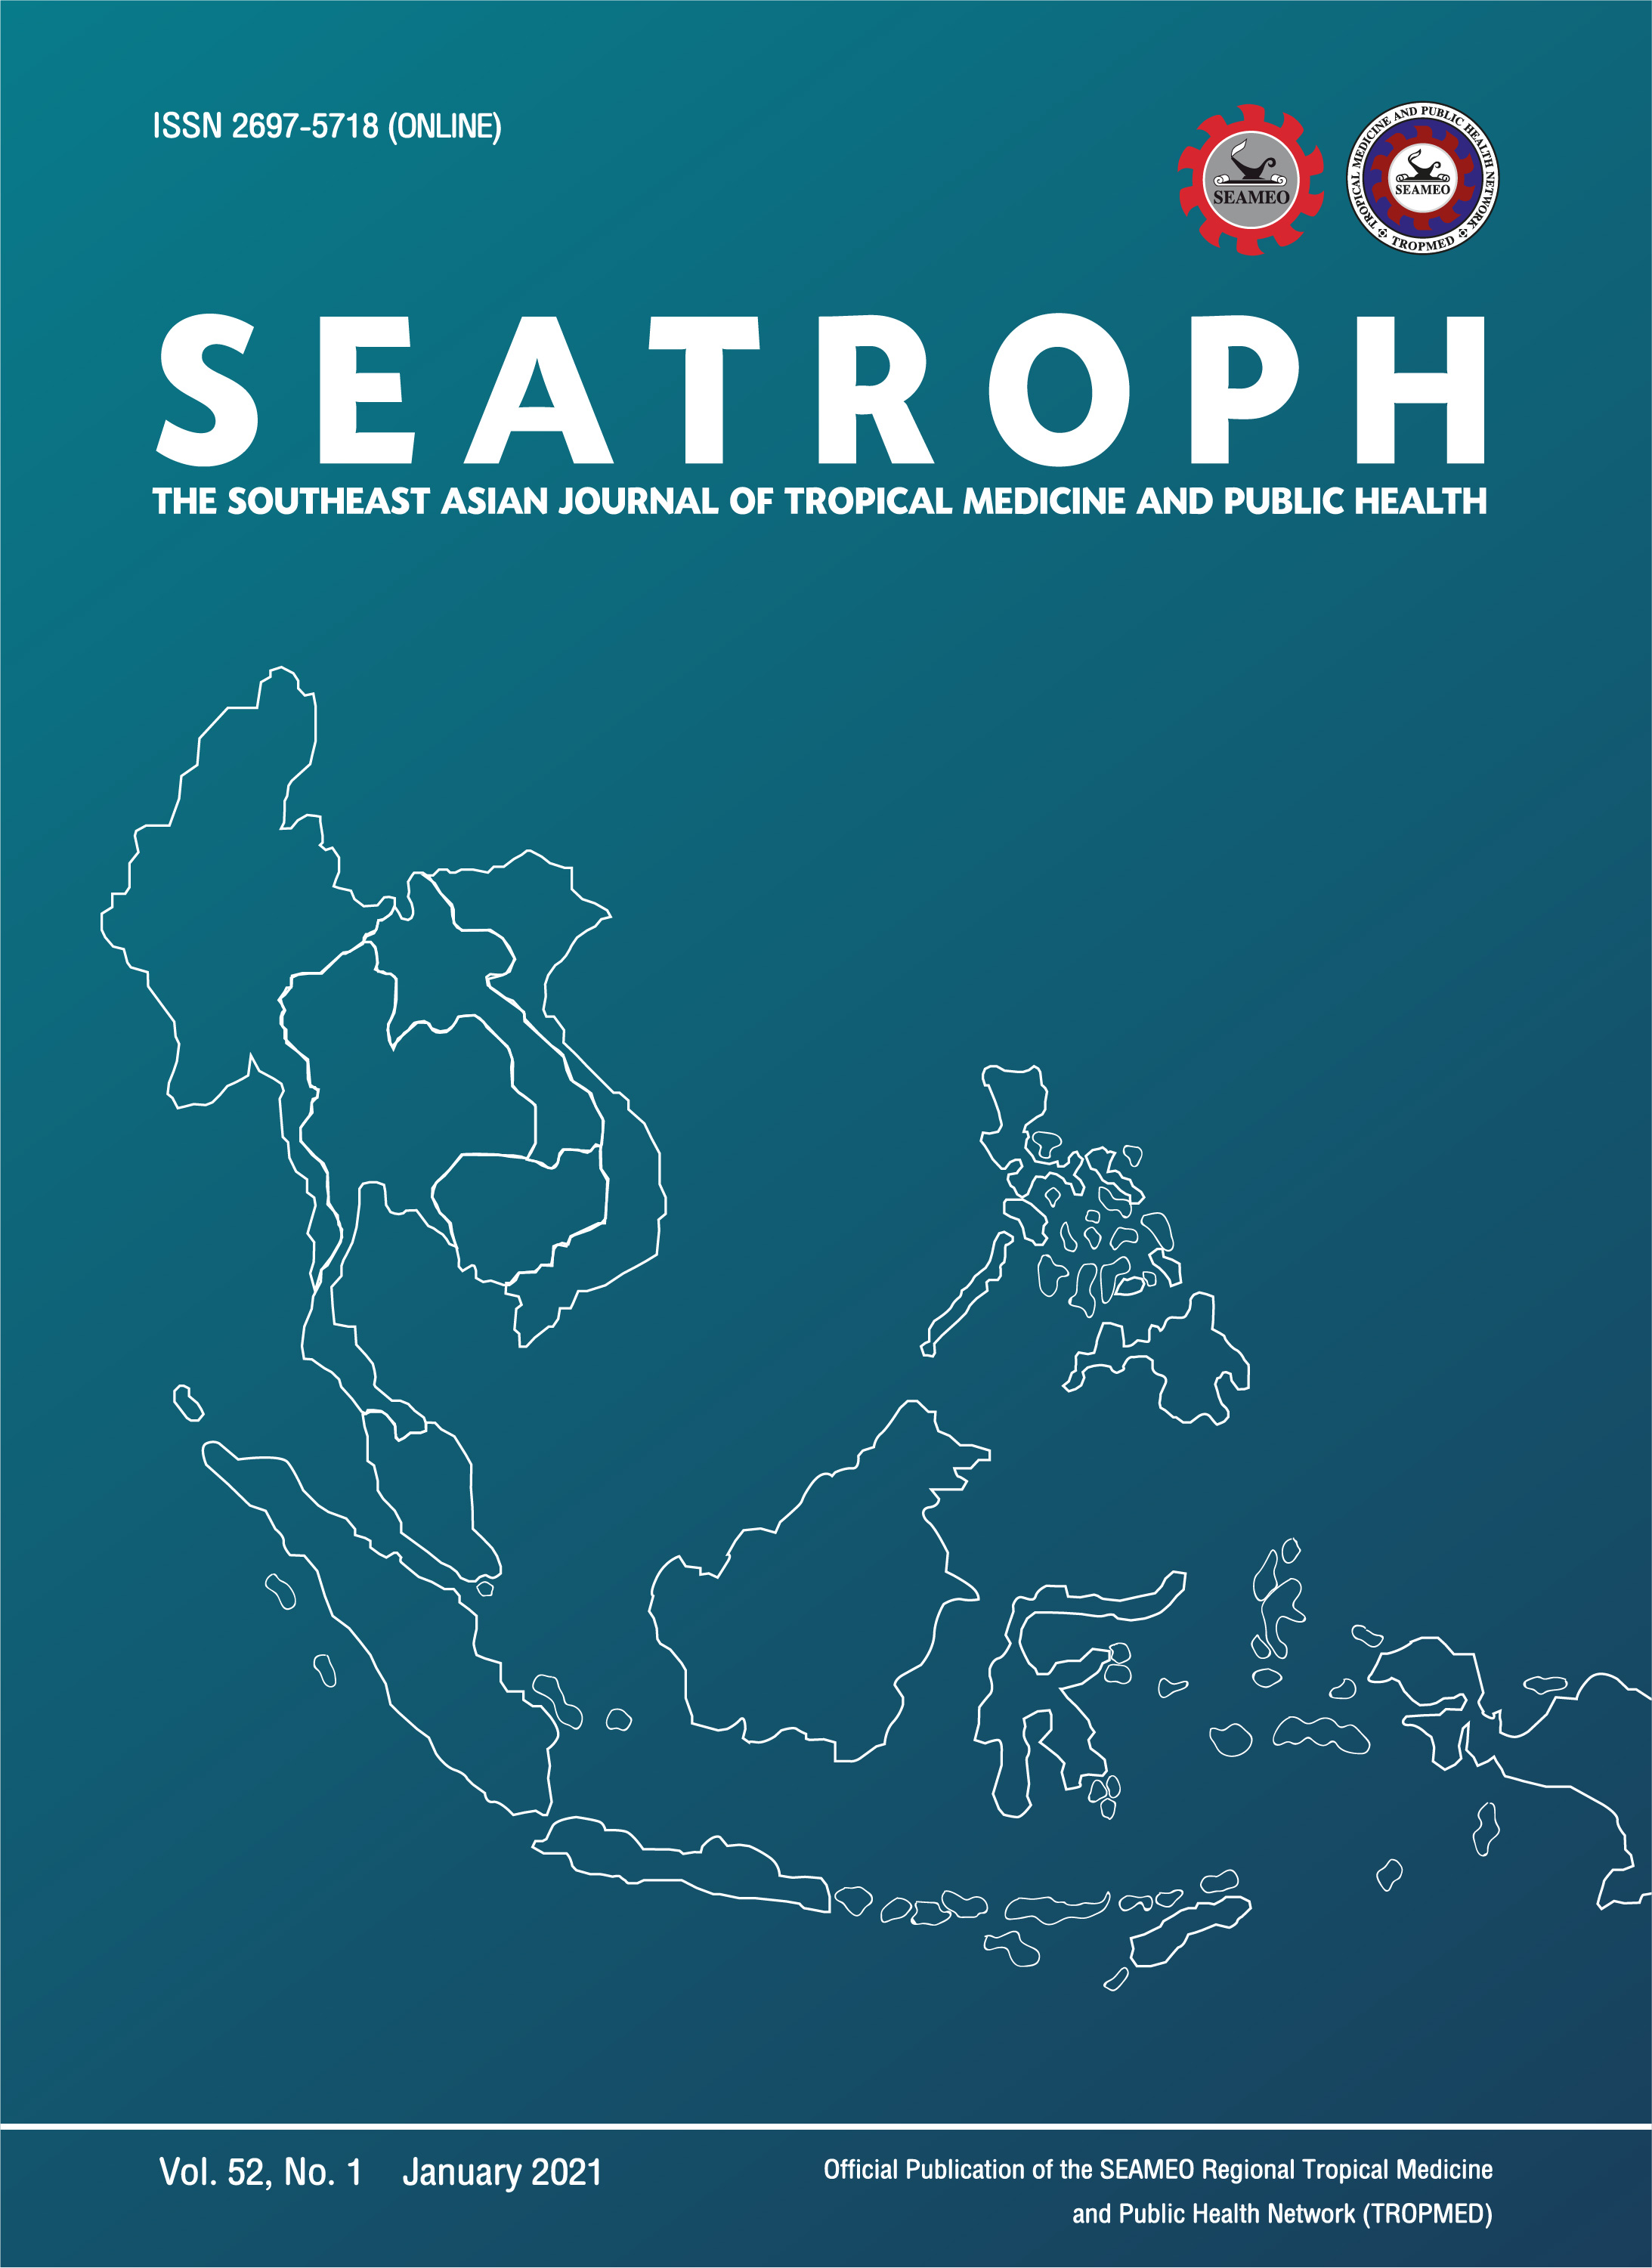 View Vol. 52 No. 1 (2021): THE SOUTHEAST ASIAN JOURNAL OF TROPICAL MEDICINE AND PUBLIC HEALTH